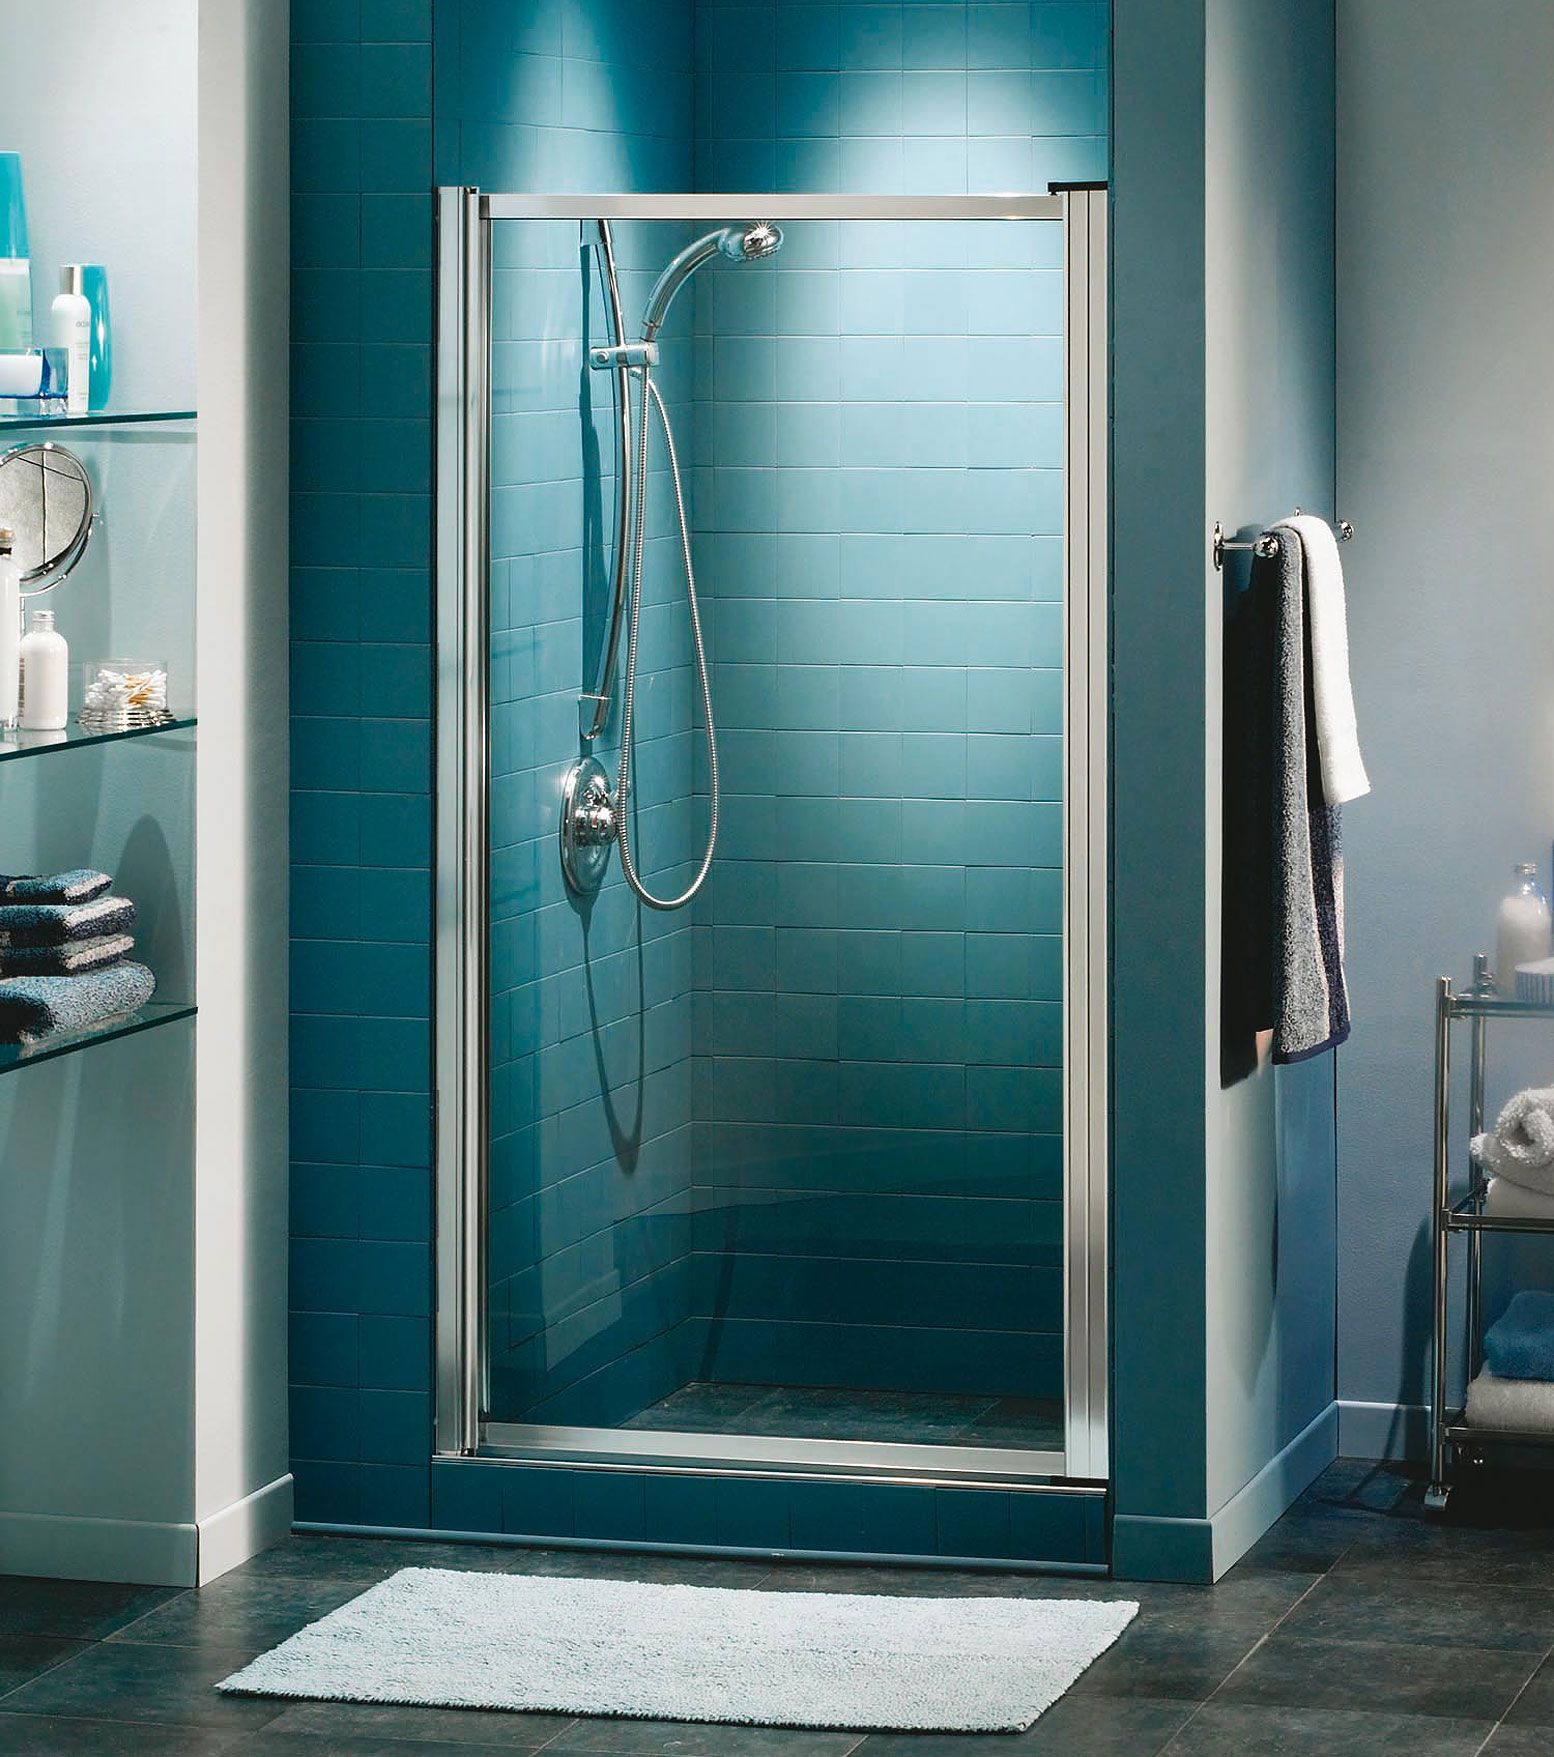 Pivolok Pivot Shower Door 19 20 X 64 In Porte De Douche Douche Remodeler La Douche